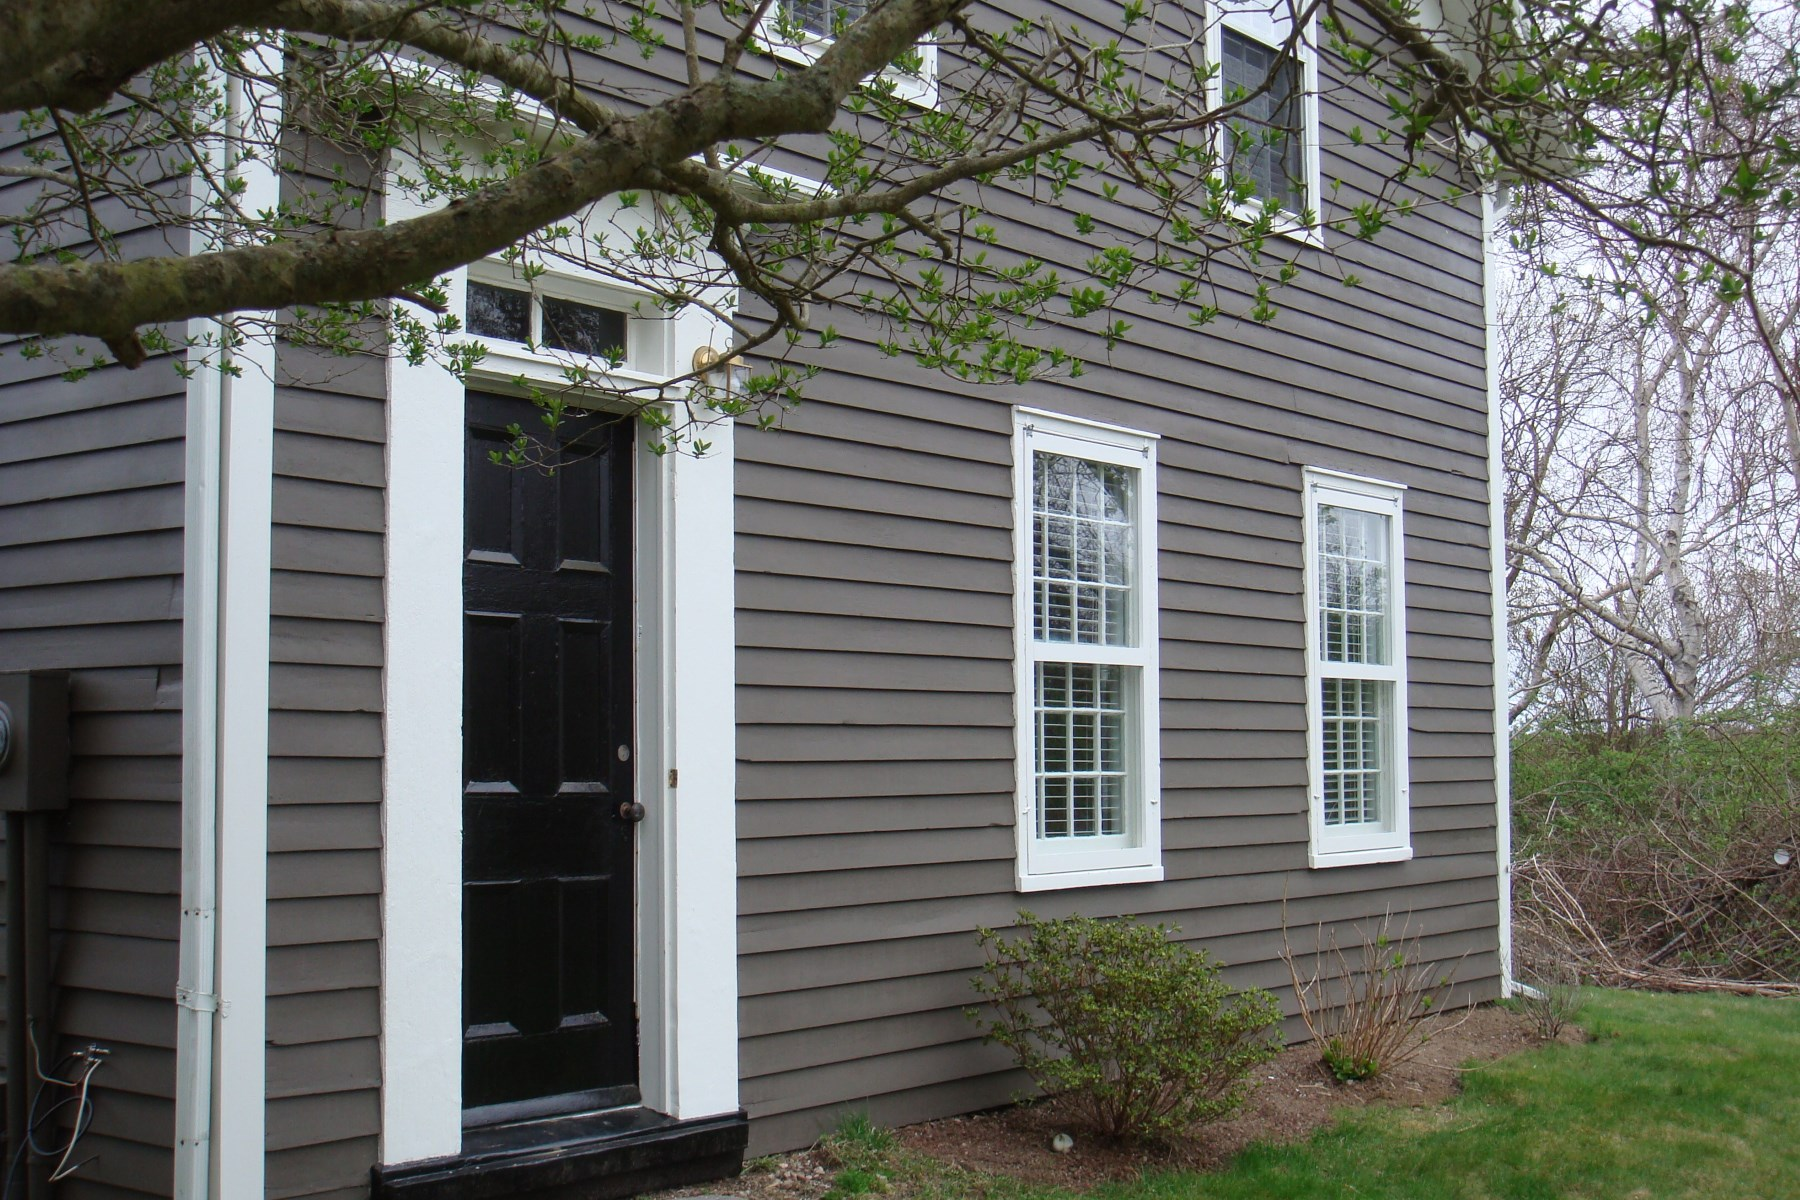 Single Family Home for Rent at Sagaponack - South of the Highway 614 Sagg Main Street Sagaponack, New York 11962 United States